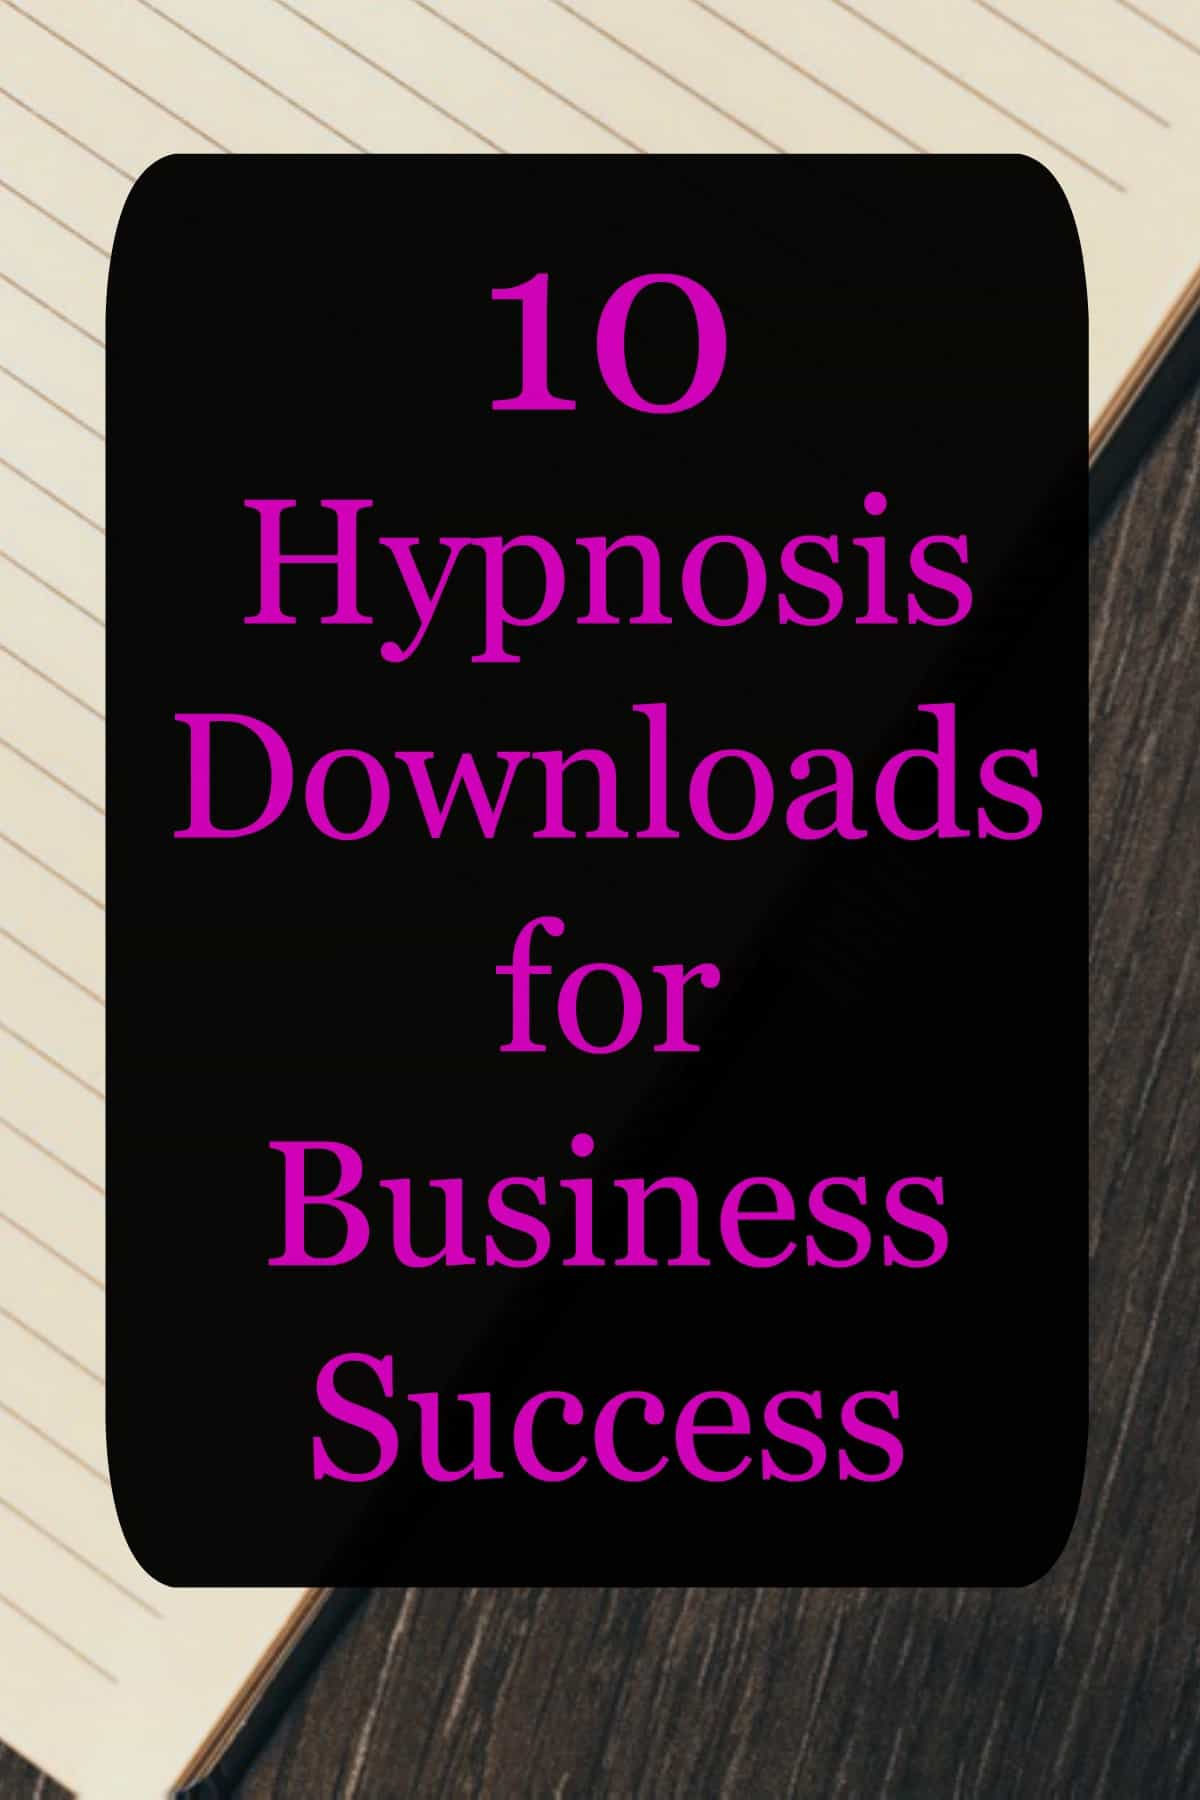 10 hypnosis downloads for business success